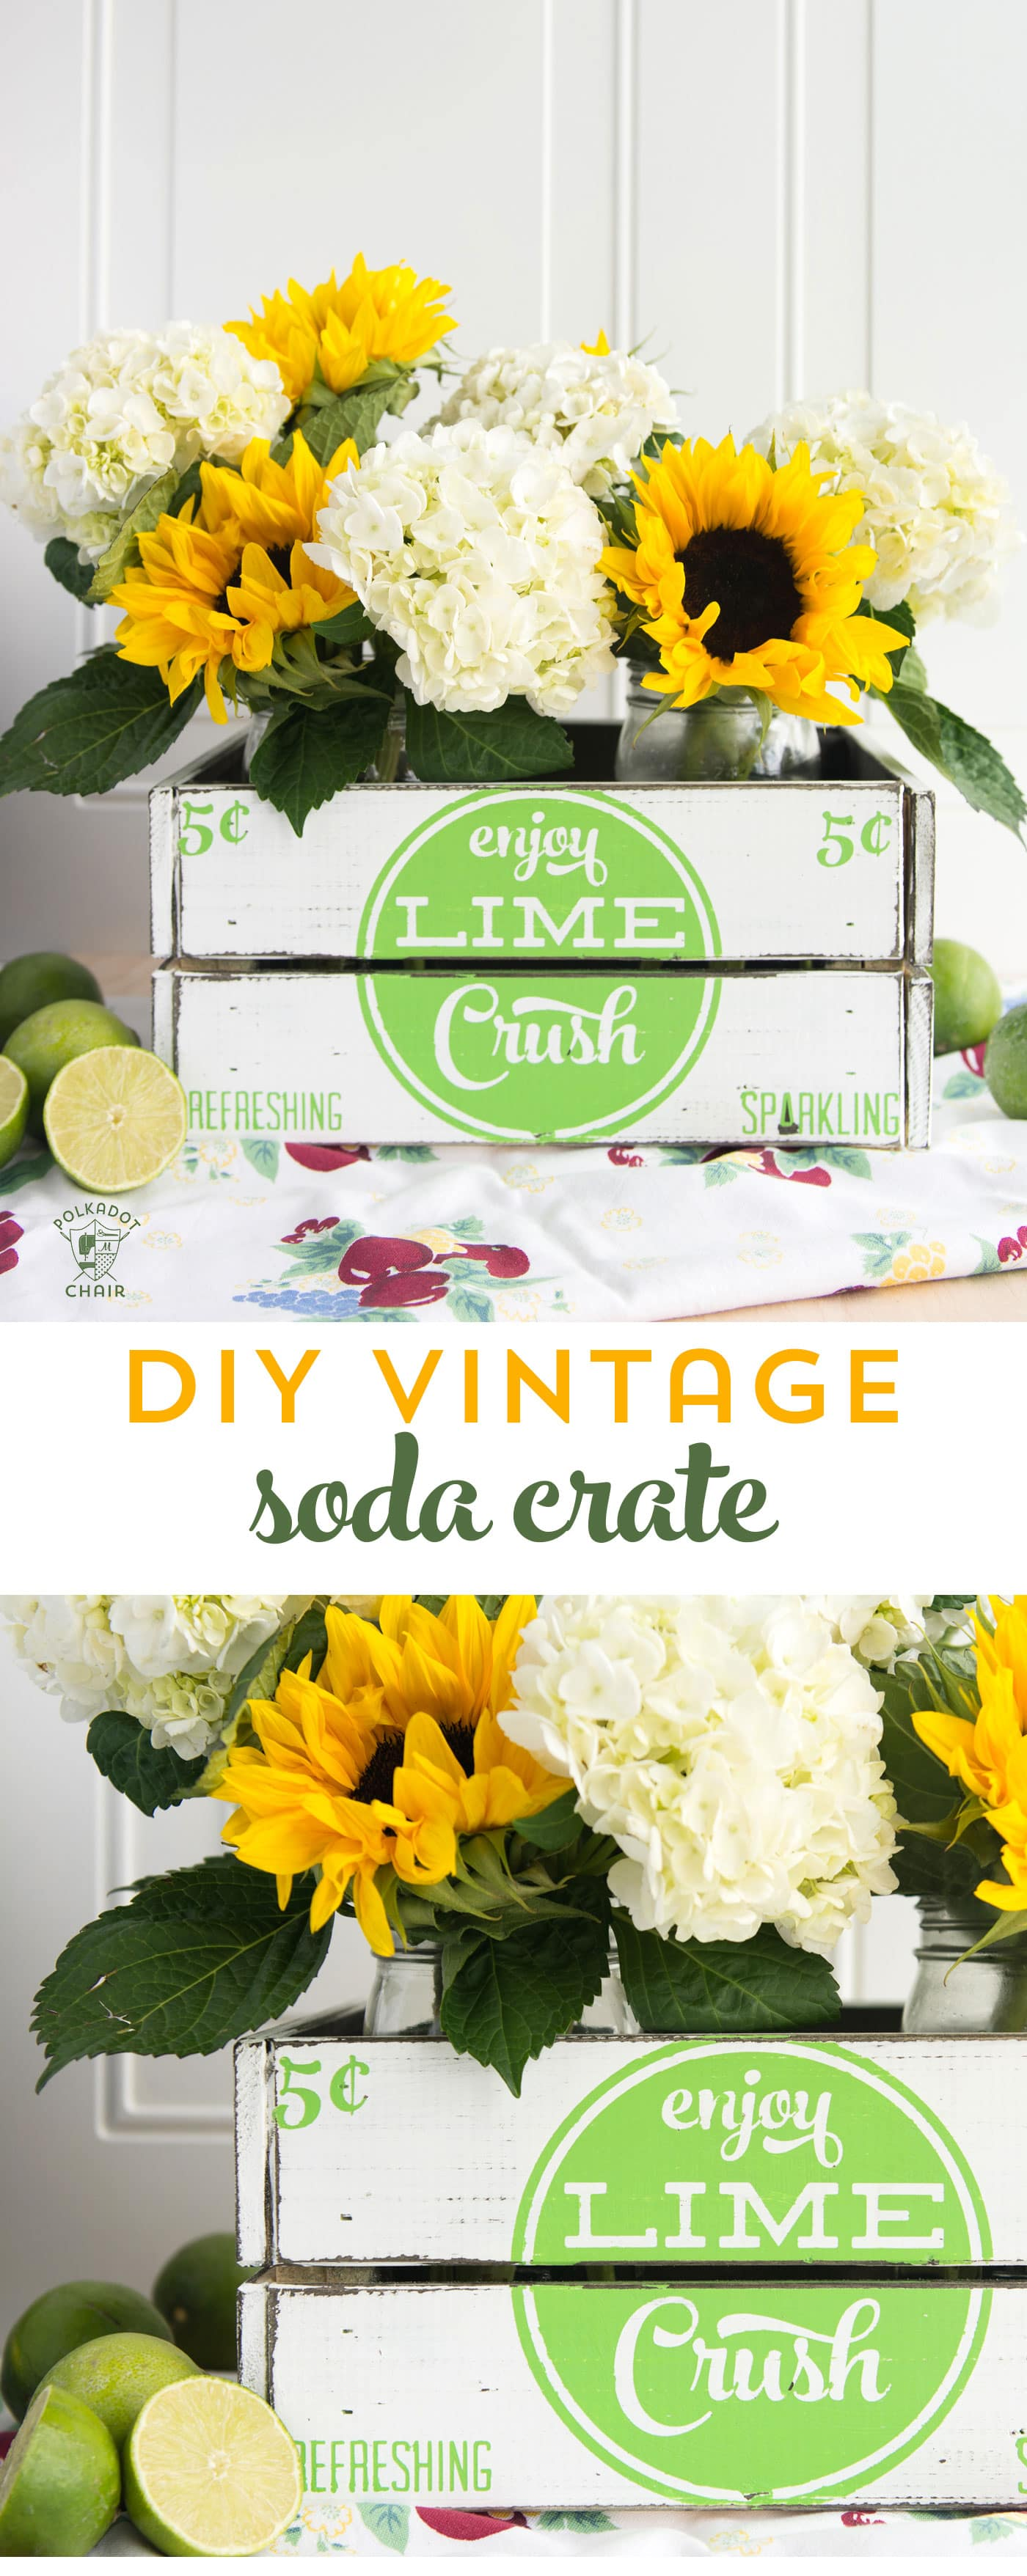 learn how to make your own hand painted vintage soda crate using a stencil. Such a cute project for summer, love the vintage farmhouse style of this crate!